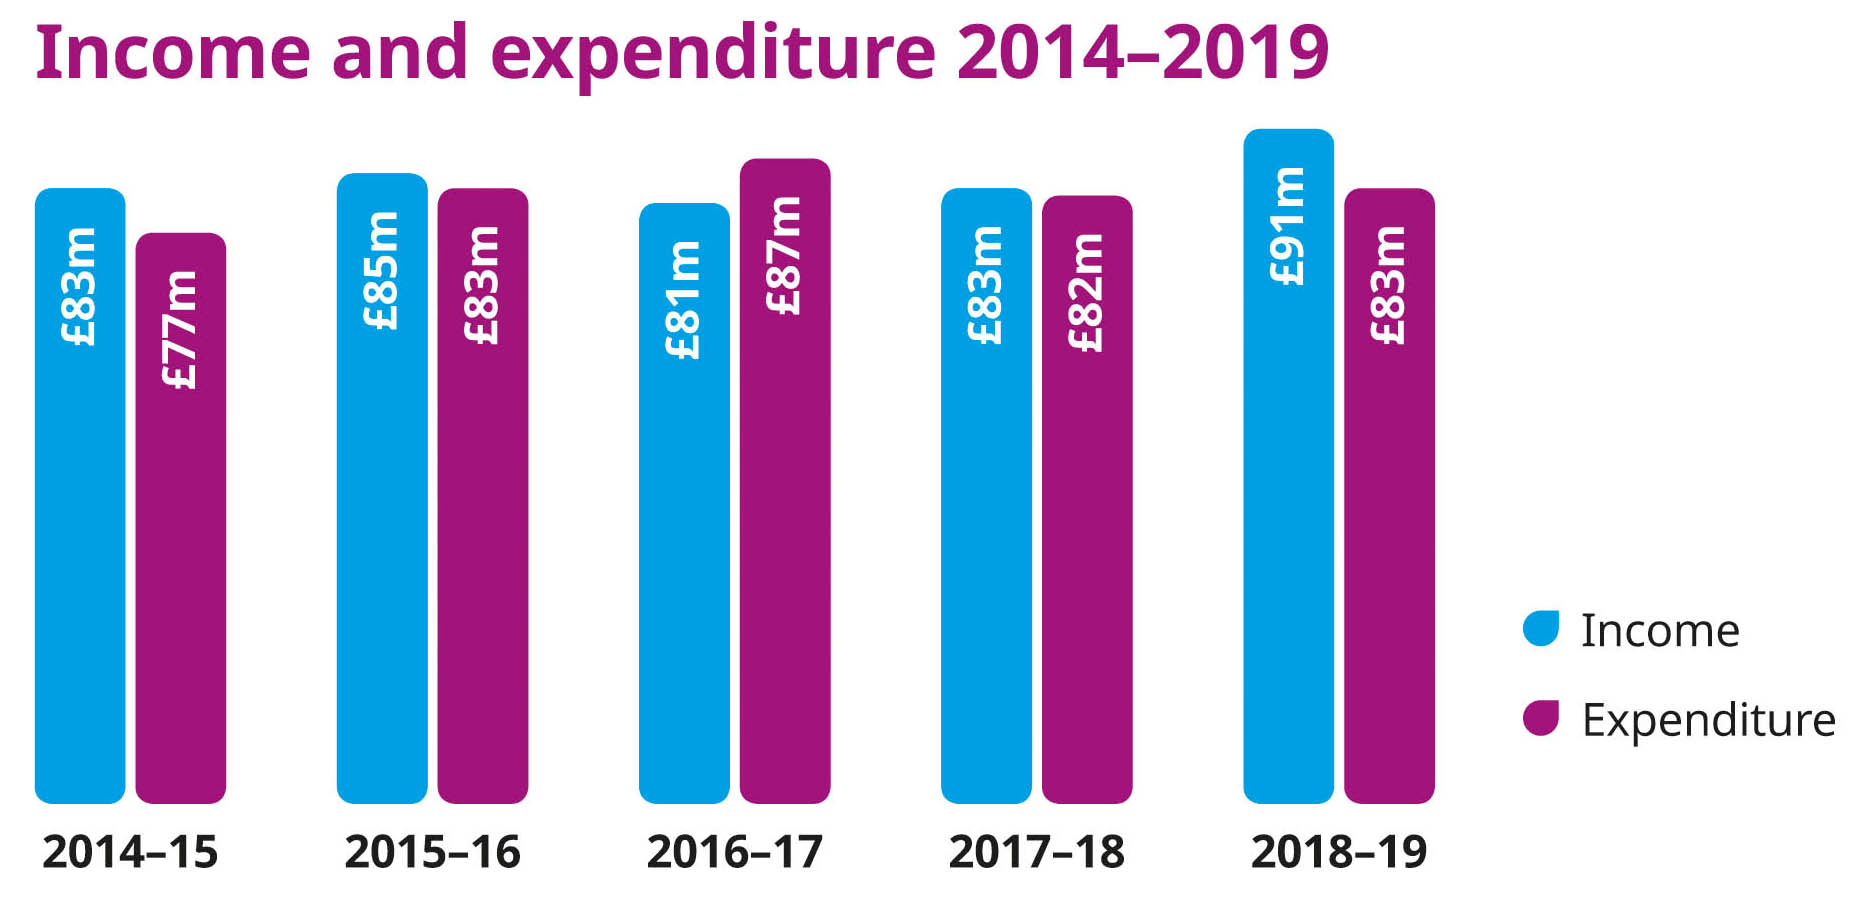 Graphic showing income and expenditure between 2014 - 2019